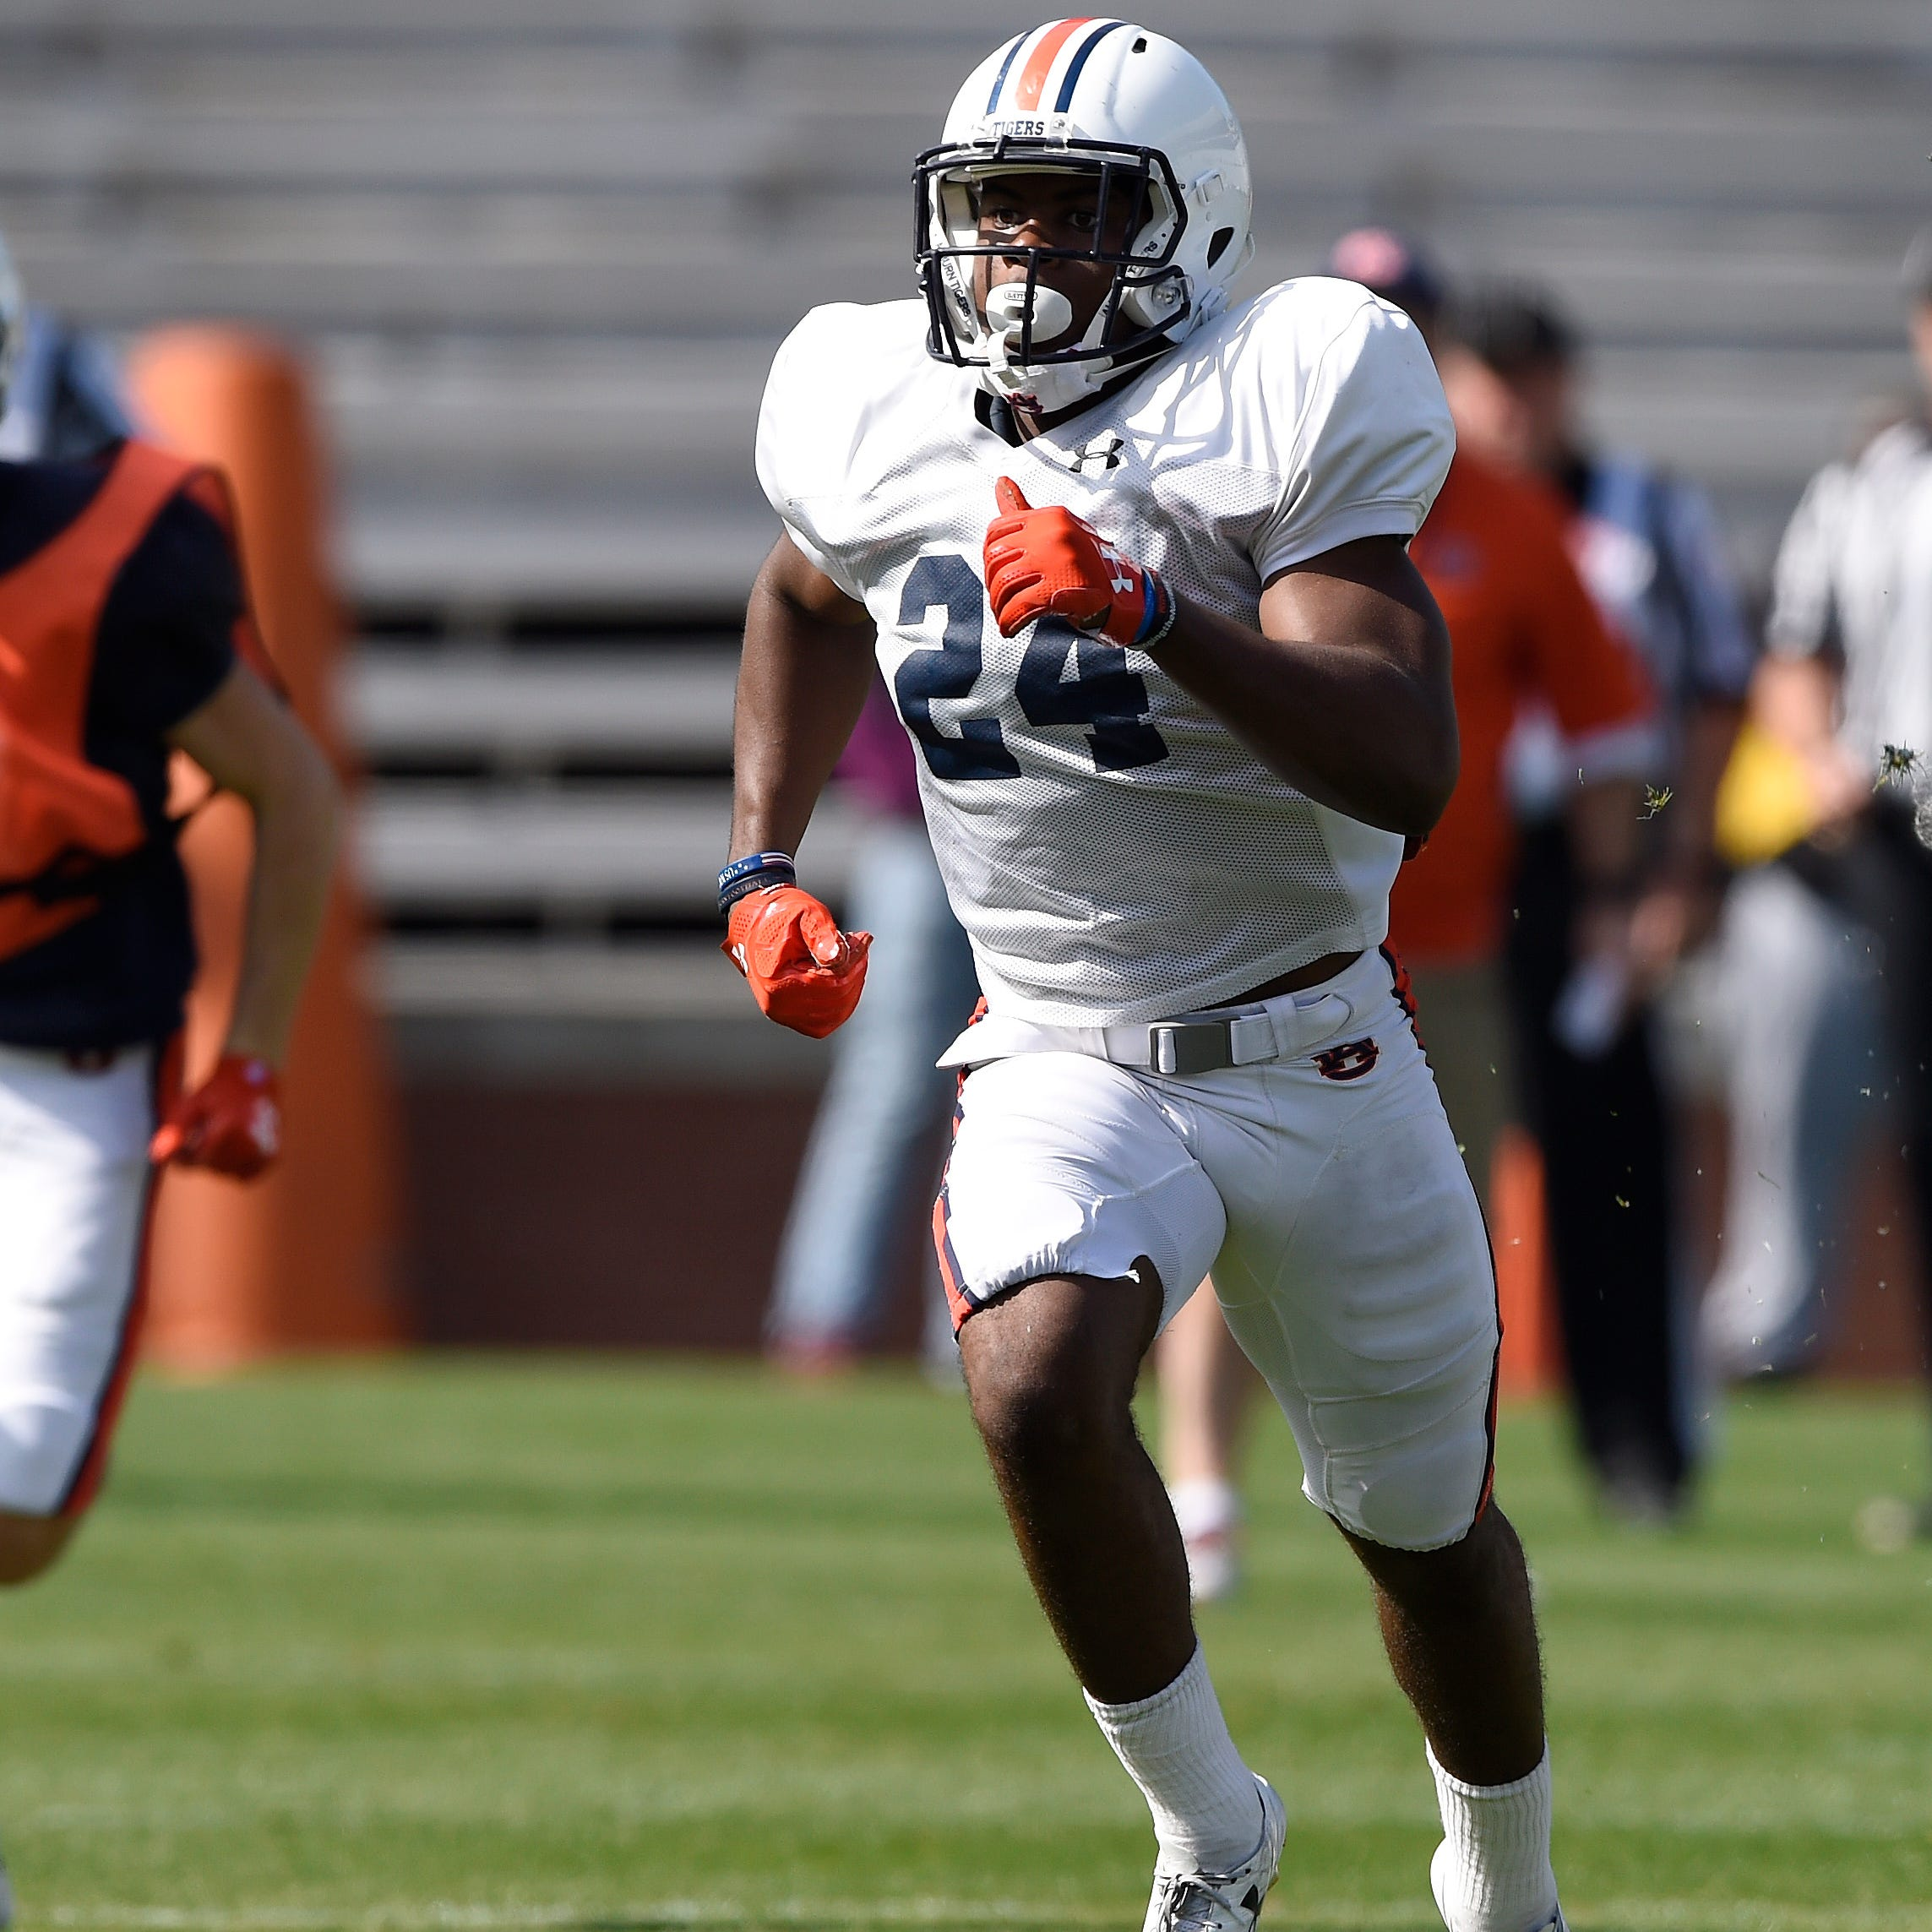 Thomas' feel-good story feels even better now at Auburn